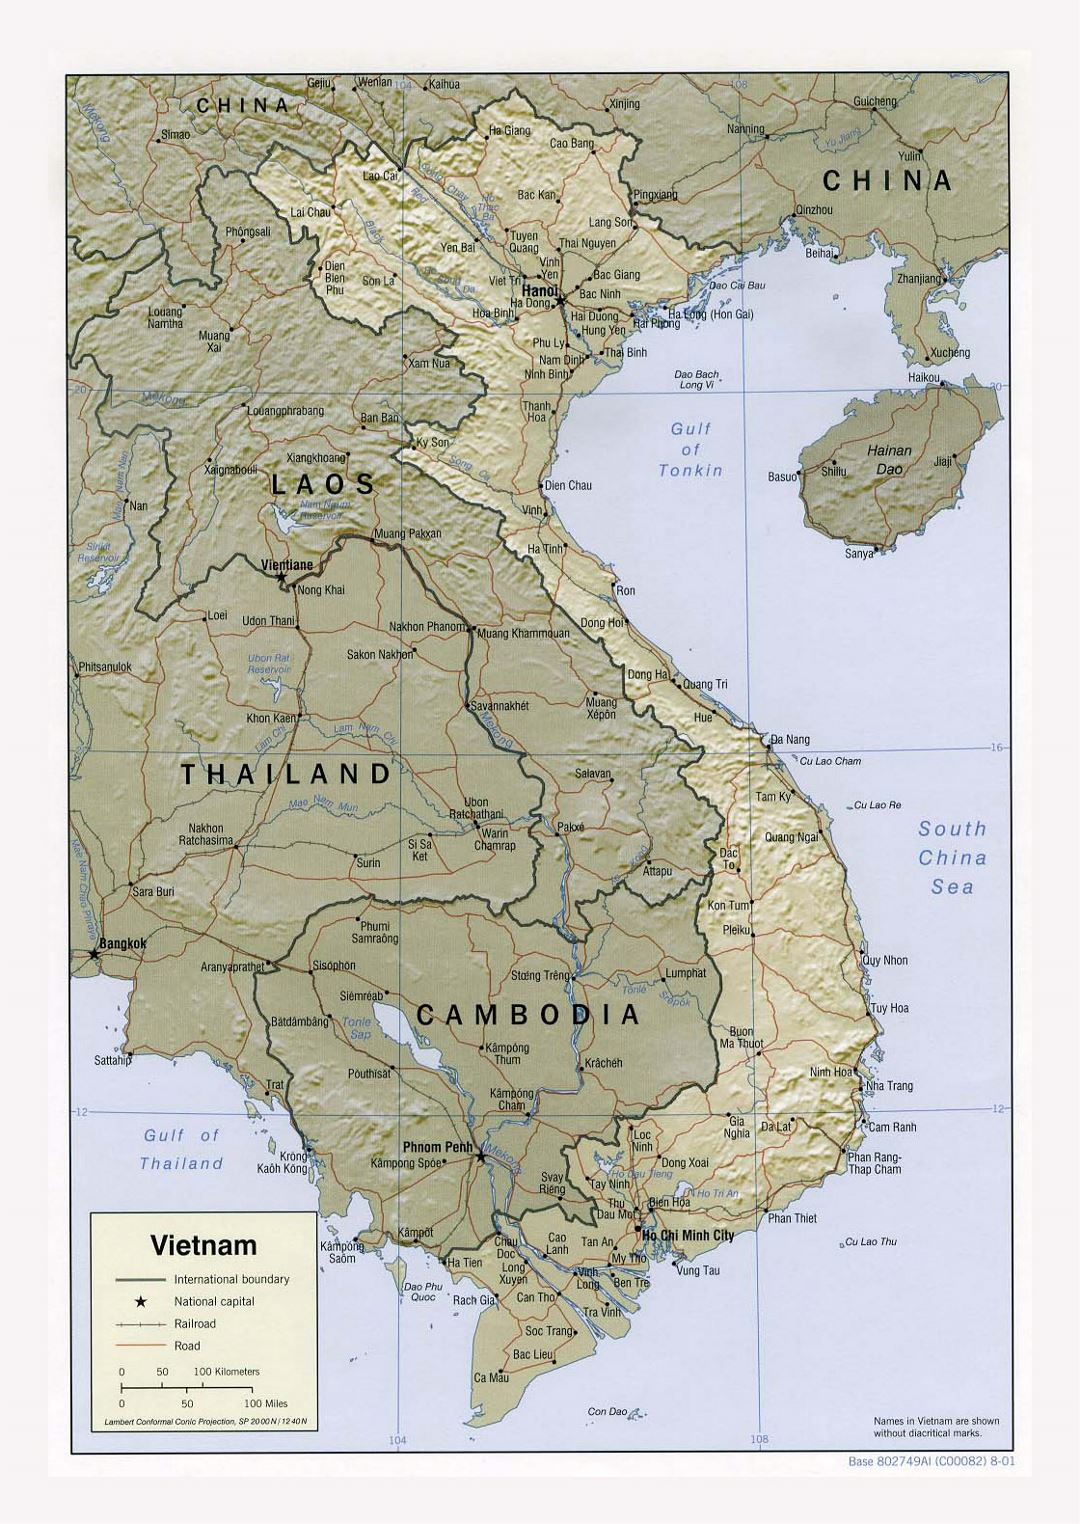 Detailed political map of Vietnam with relief, roads, railroads and major cities - 2001